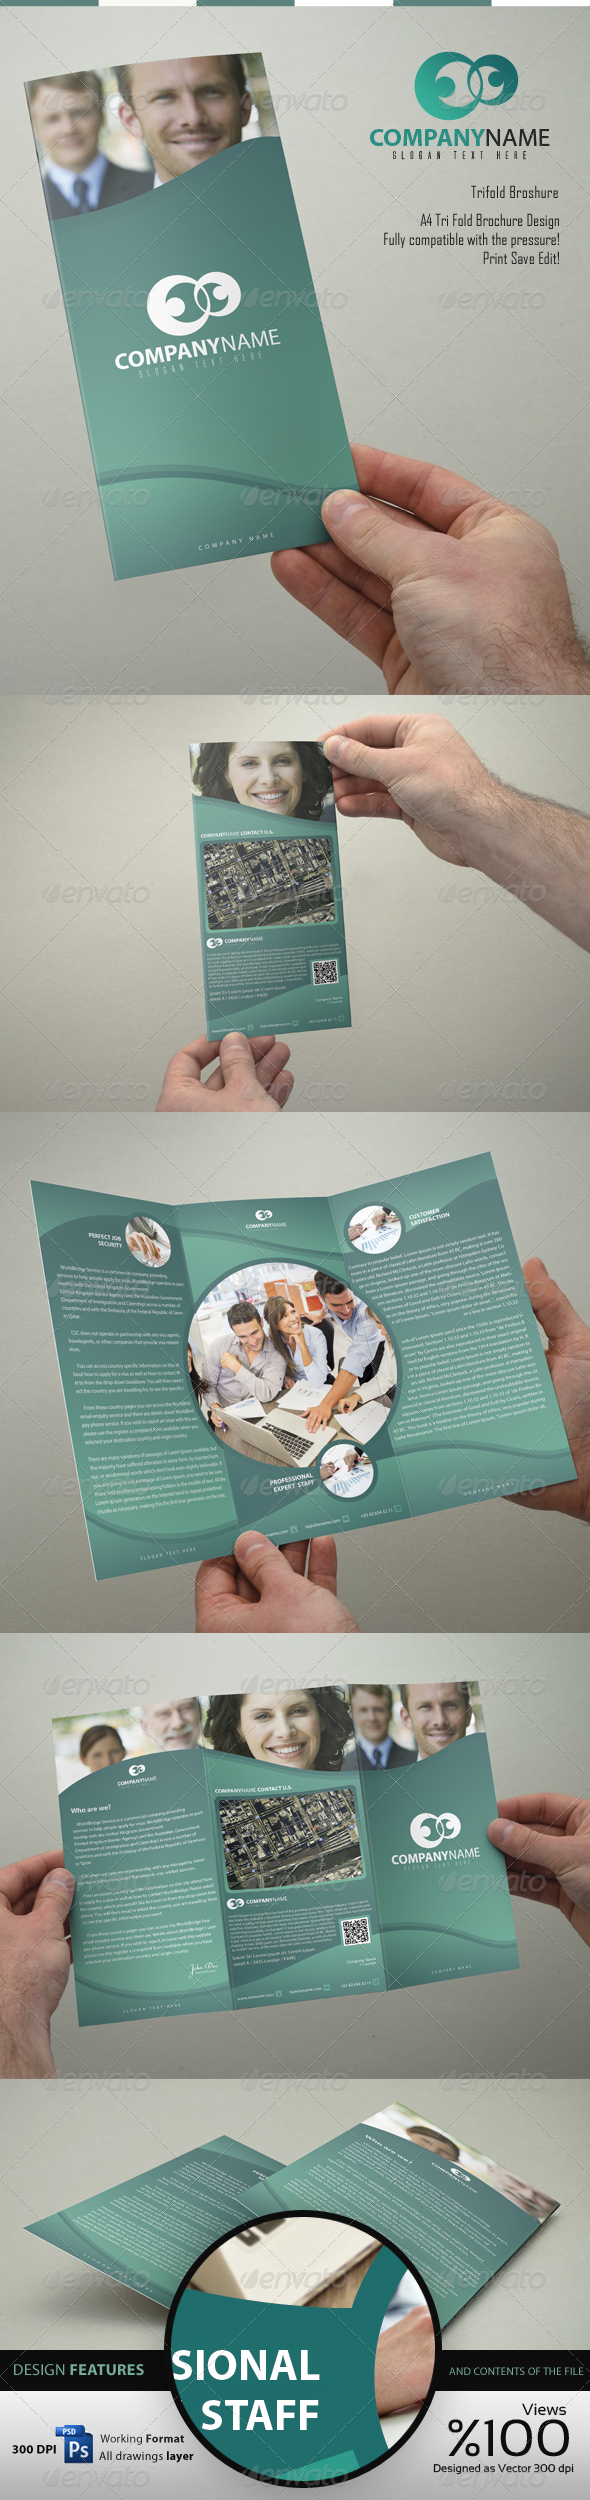 Company Trifold - 1 Brochure Design - Brochures Print Templates